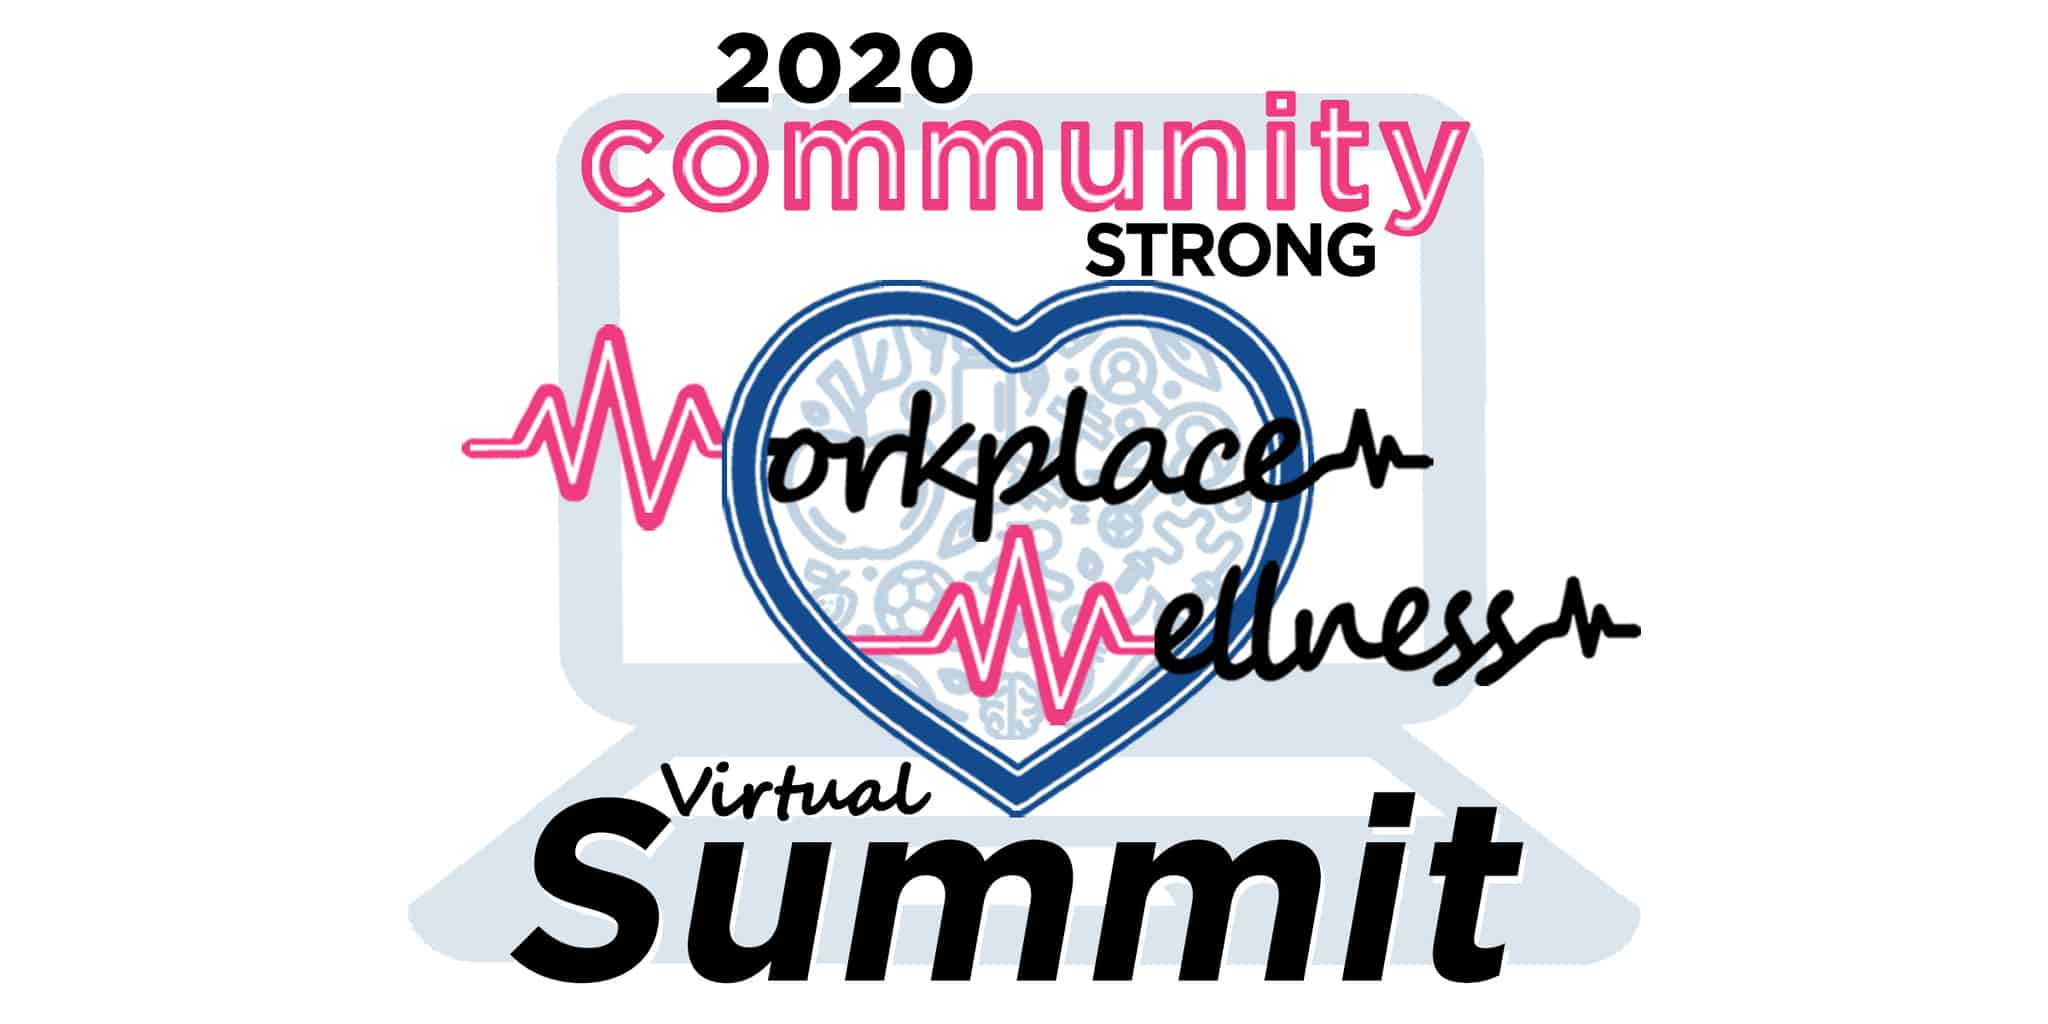 Community Strong<br>Workplace Wellness<br>Exhibit Hall 2020